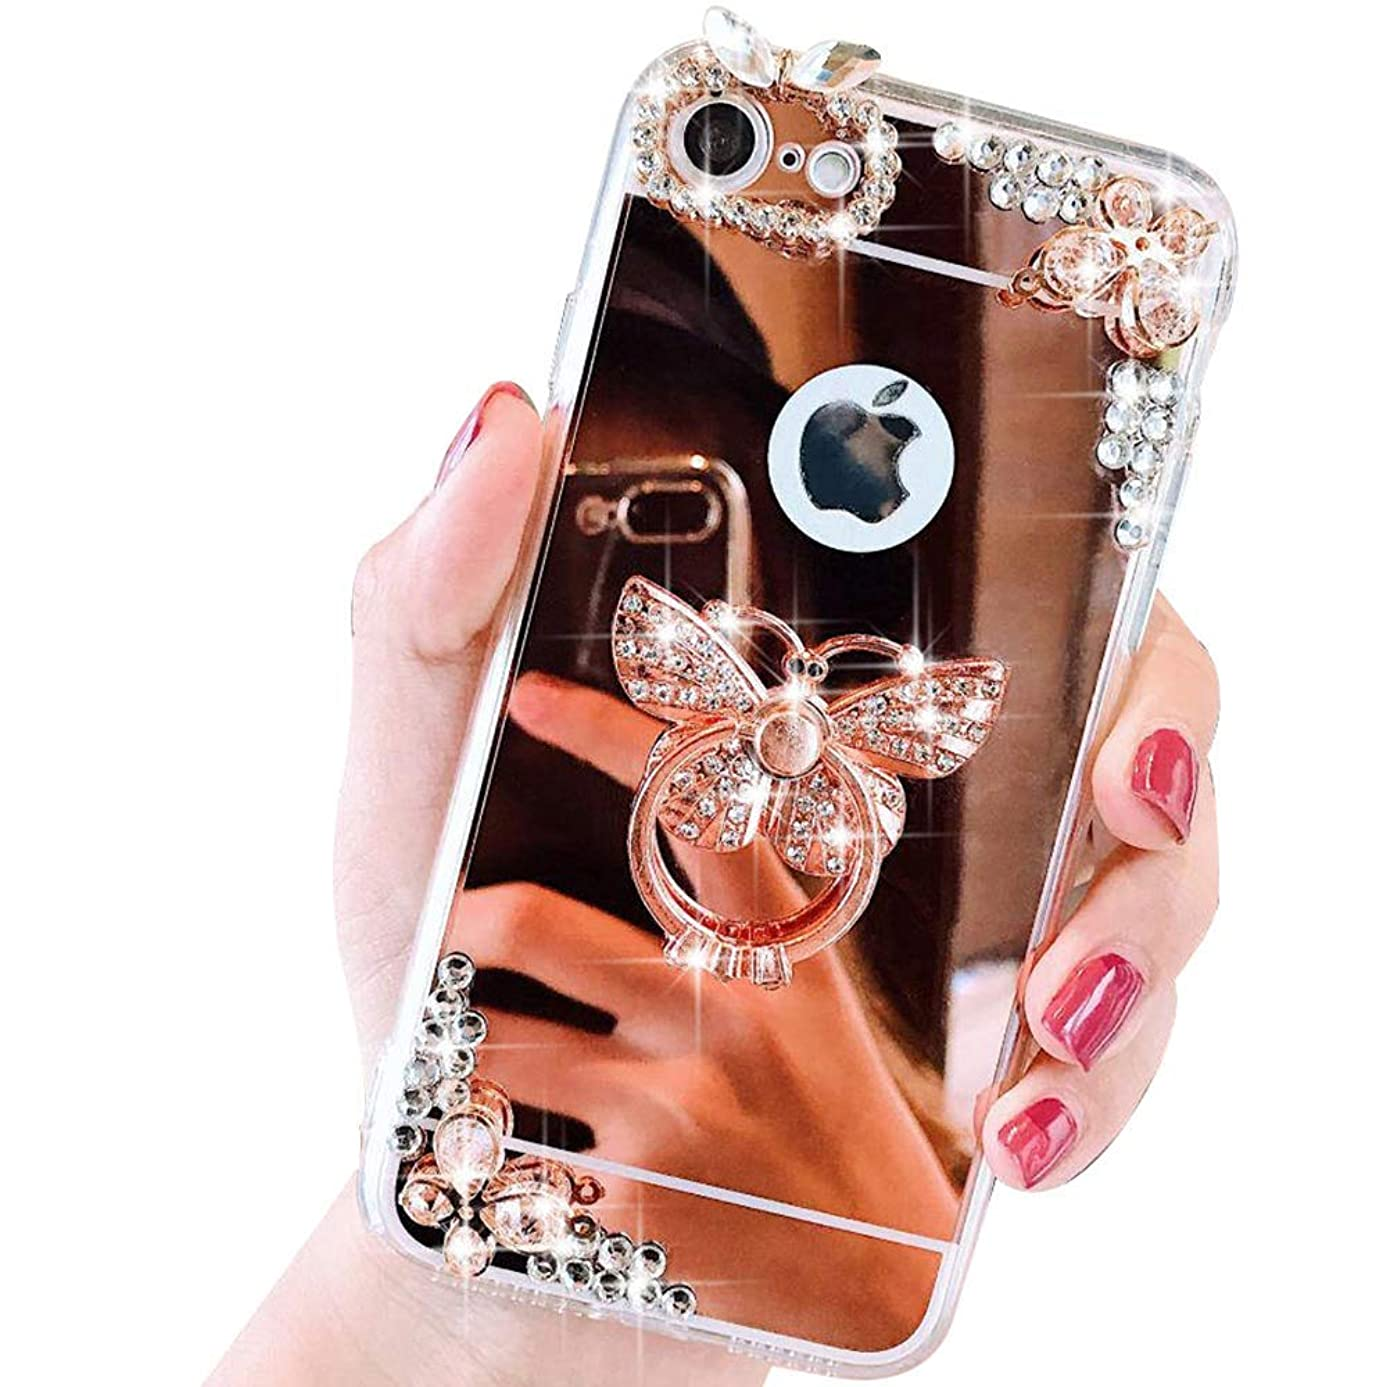 Case for iPhone Xs Max LAPOPNUT Luxury Crystal Rhinestone Case 3D Bling Glitter Diamond Butterfly Ring Stand Holder Rose Gold Thin Protective Sparkle Case Back Mirror Cover